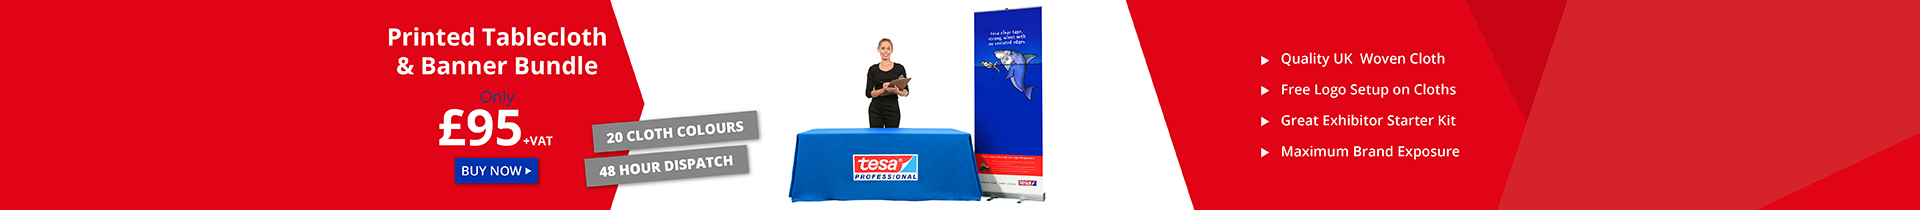 Printed Table Cloth With Logo and Branded Roller Banner Bundle UK